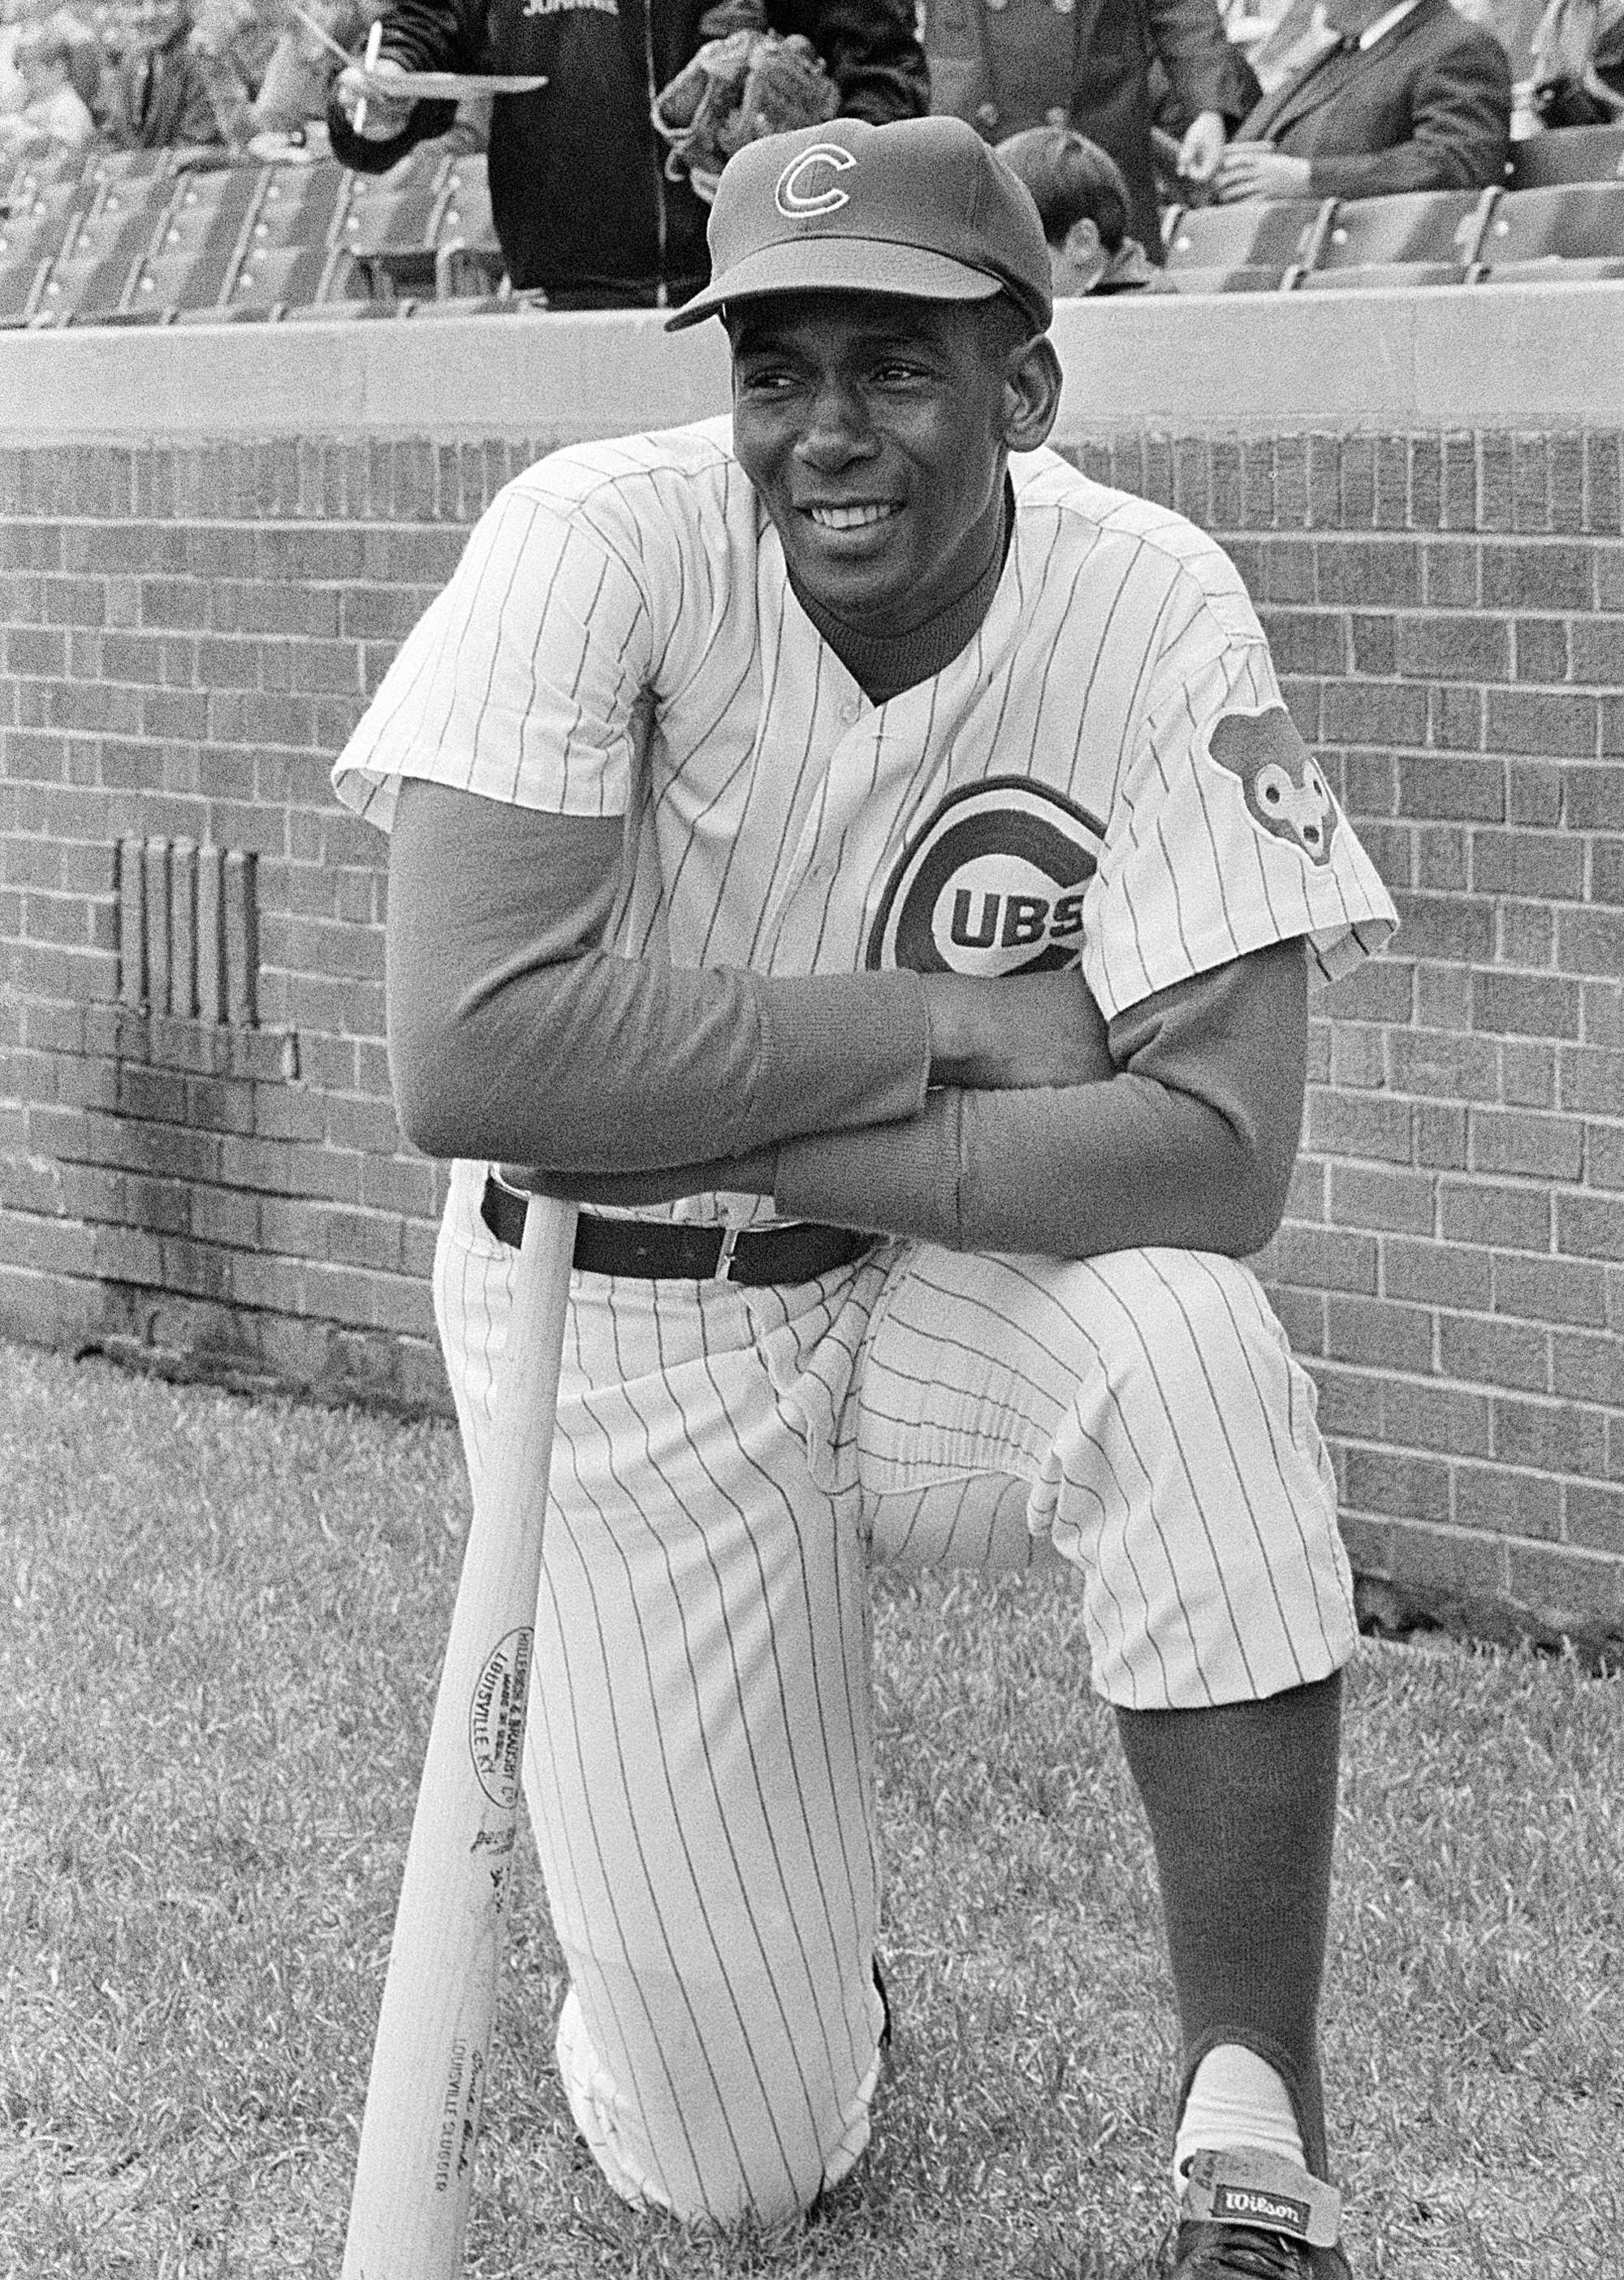 Ernie Banks was, and always will be, Mr. Cub, but his impact extended beyond Chicago's North Side team.